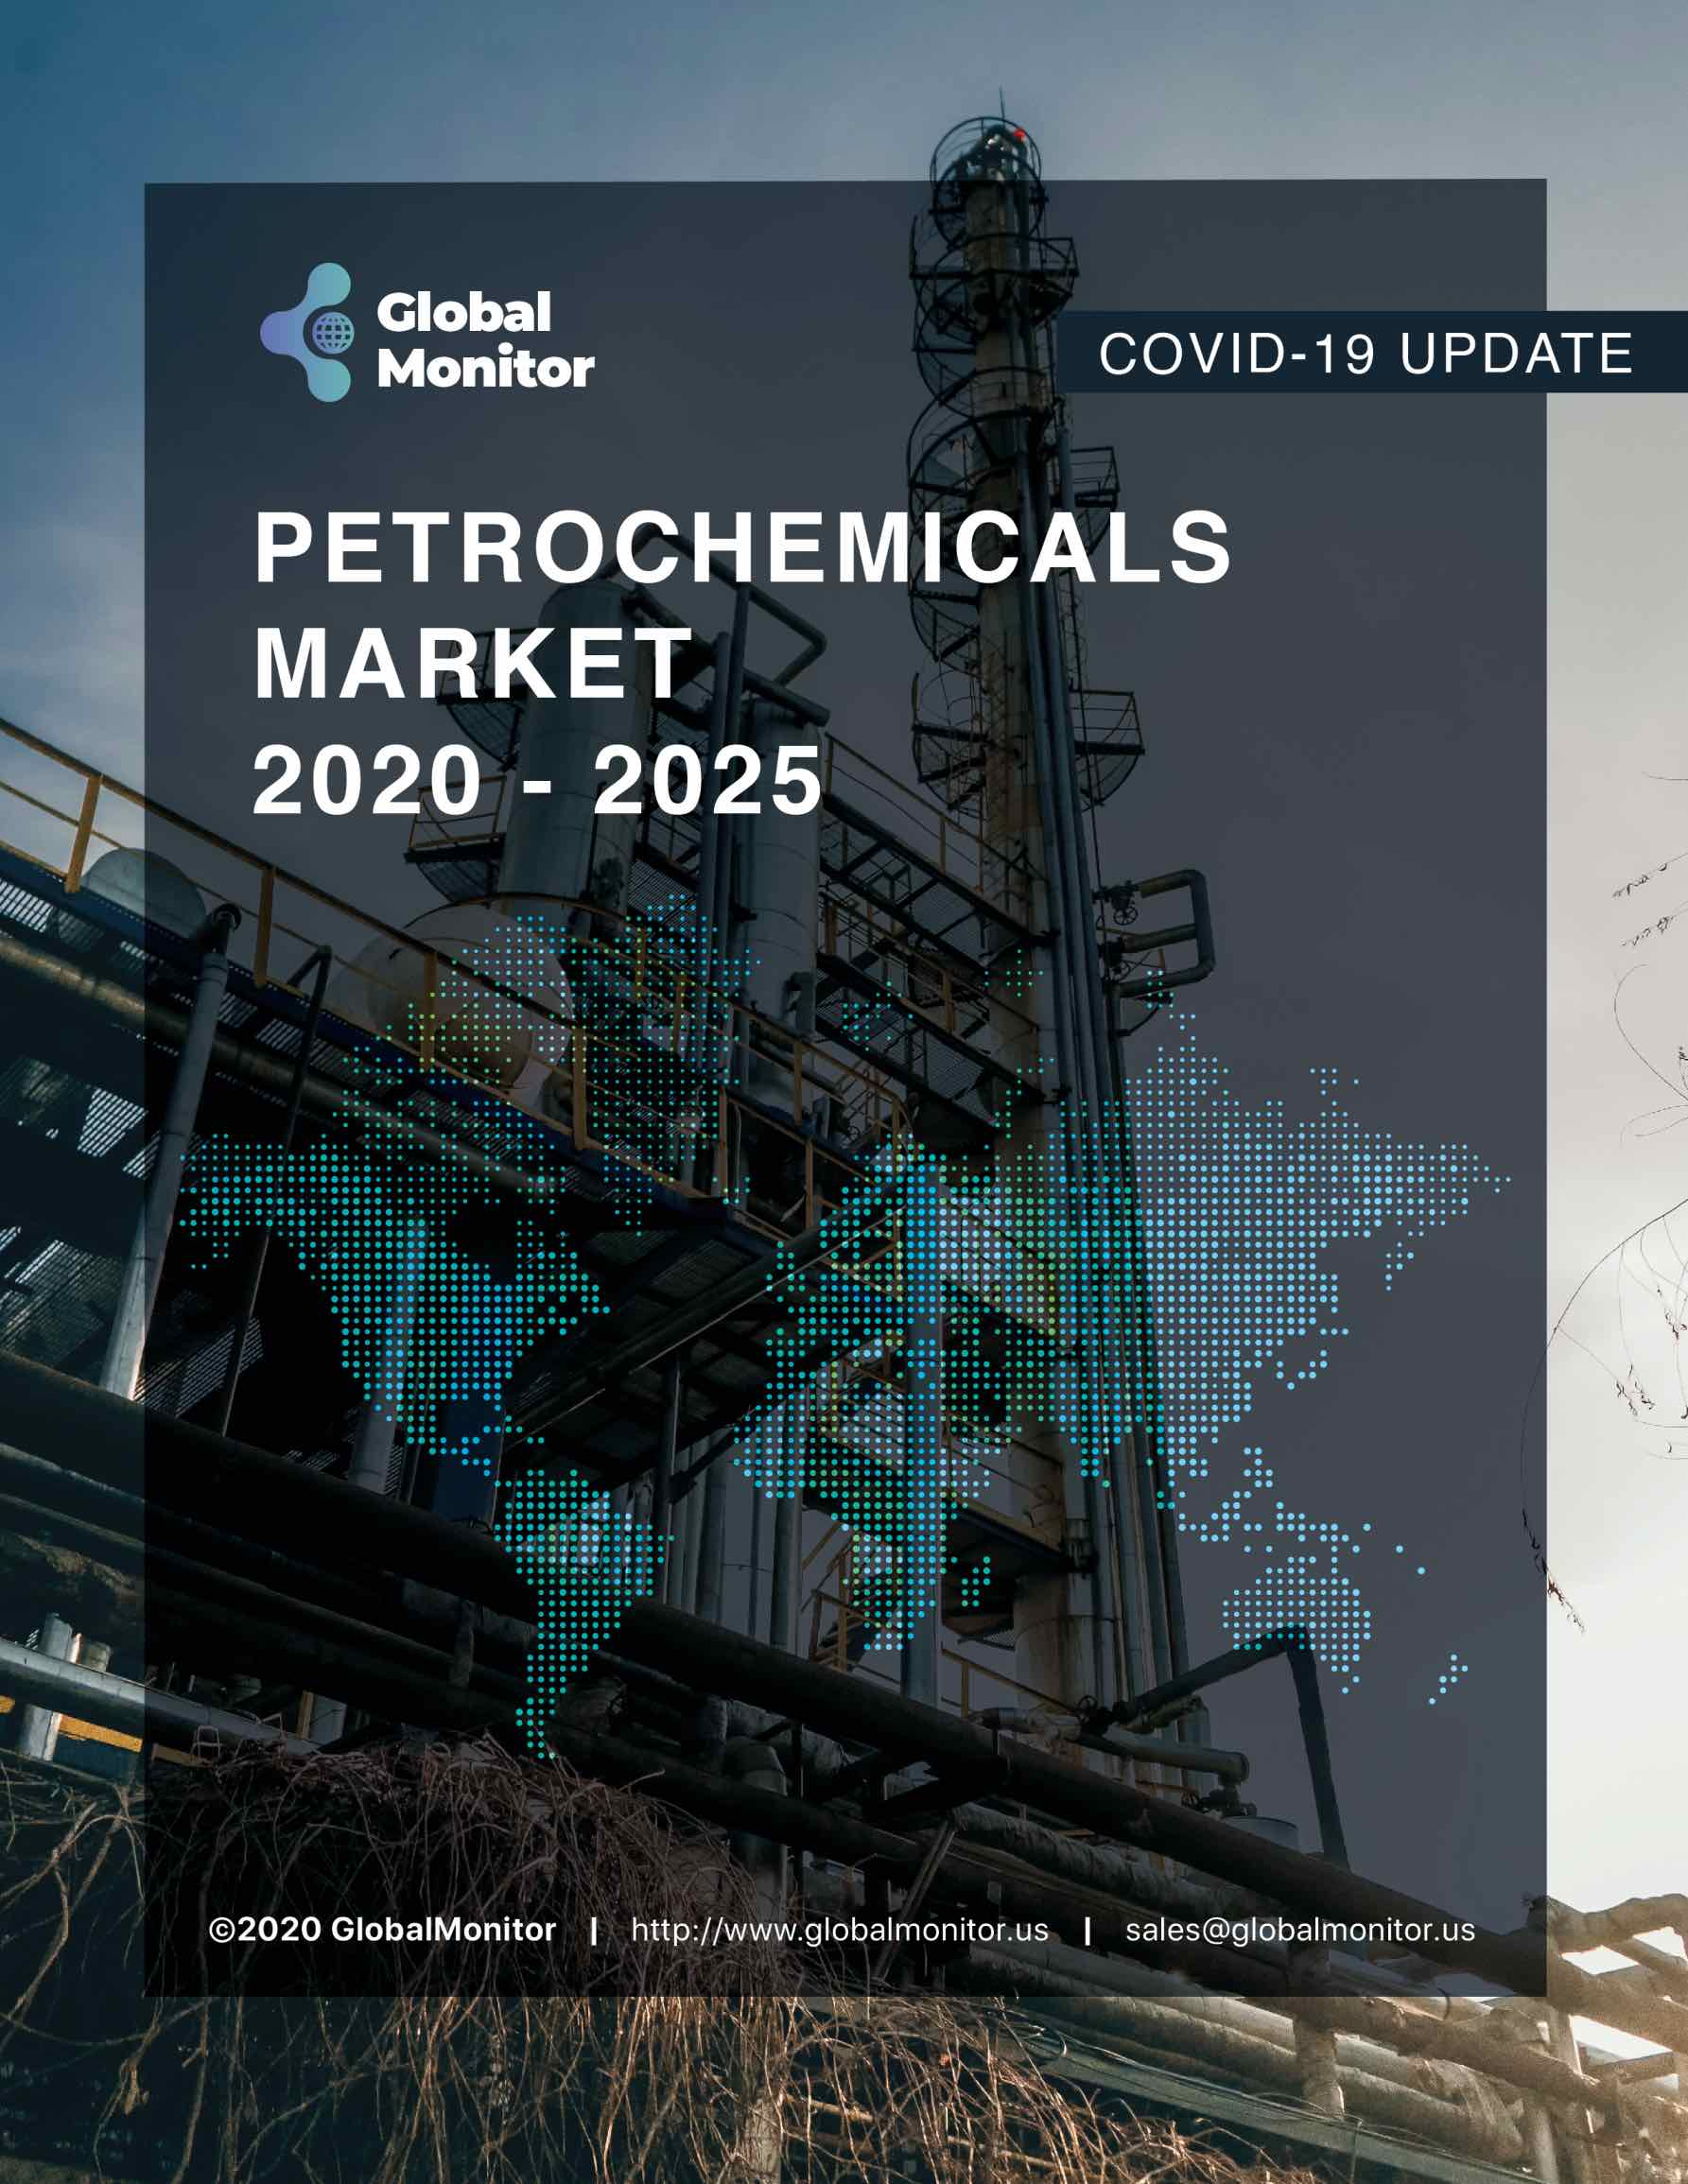 Iran Petrochemicals Market Report With COVID-19 Analysis (2020-2025)